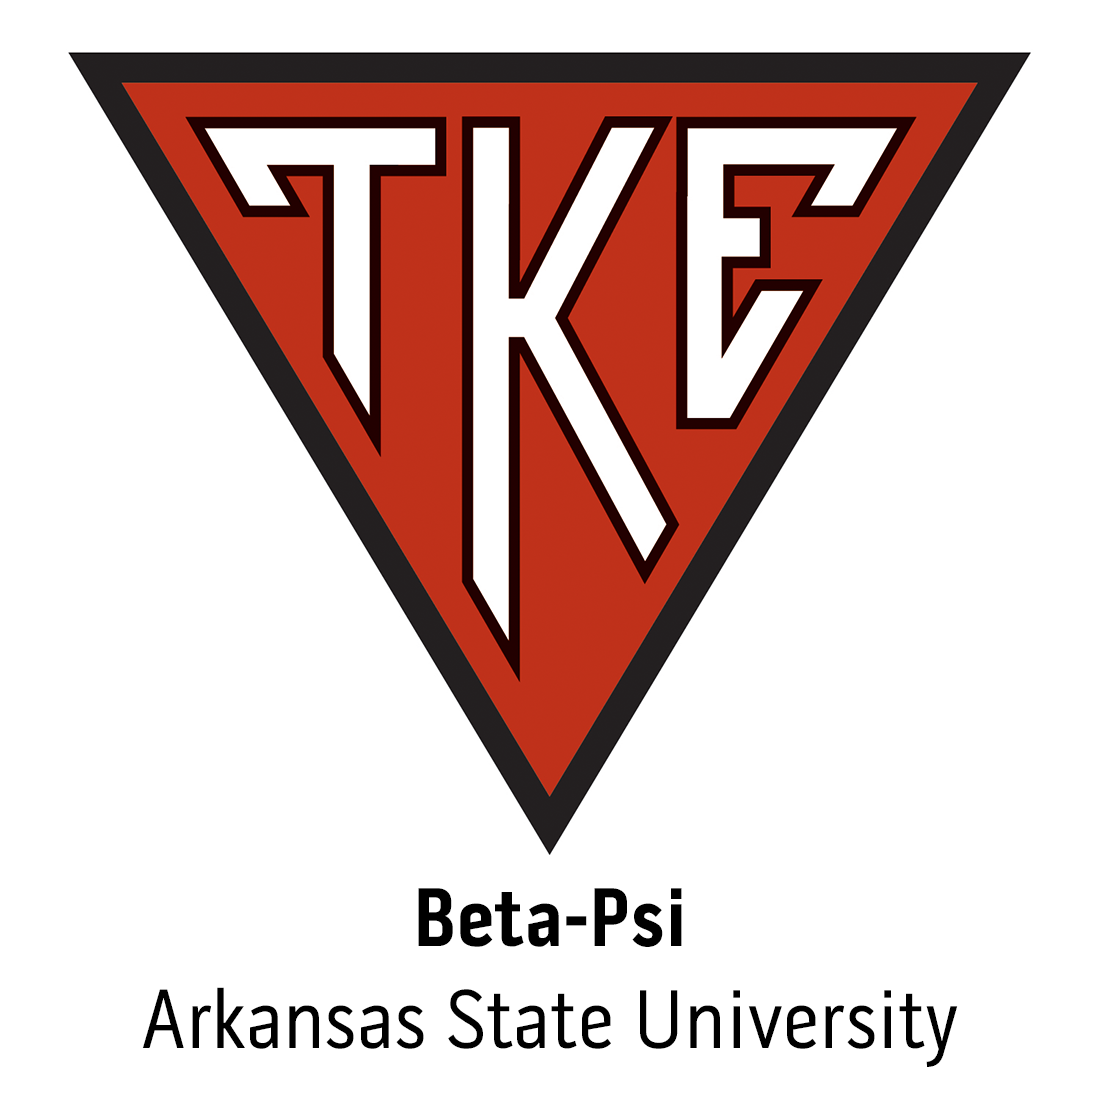 Beta-Psi Colony Colony at Arkansas State University